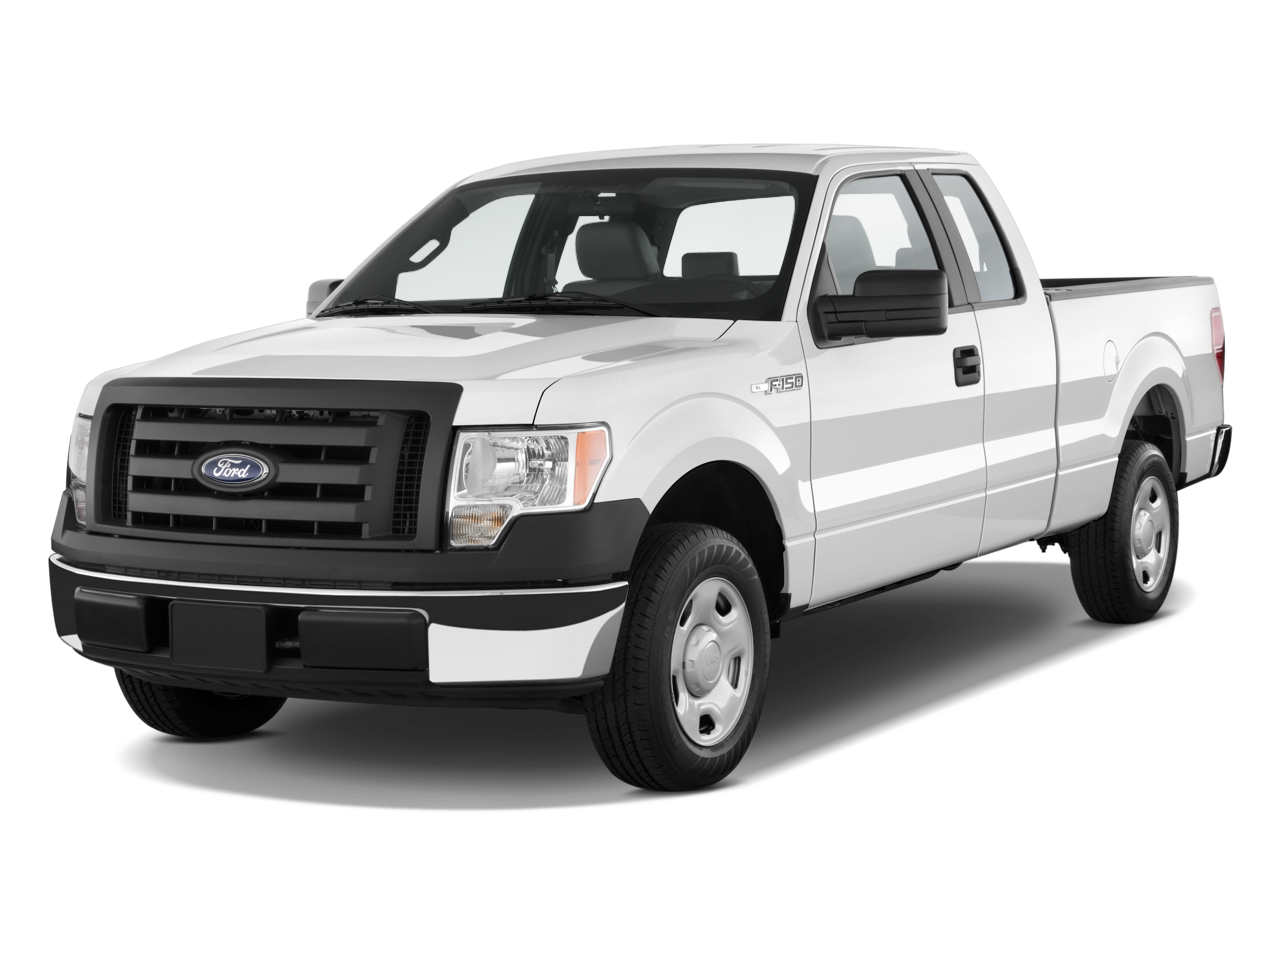 2009 Ford F-150 - Ford Pickup Truck PNG Black And White